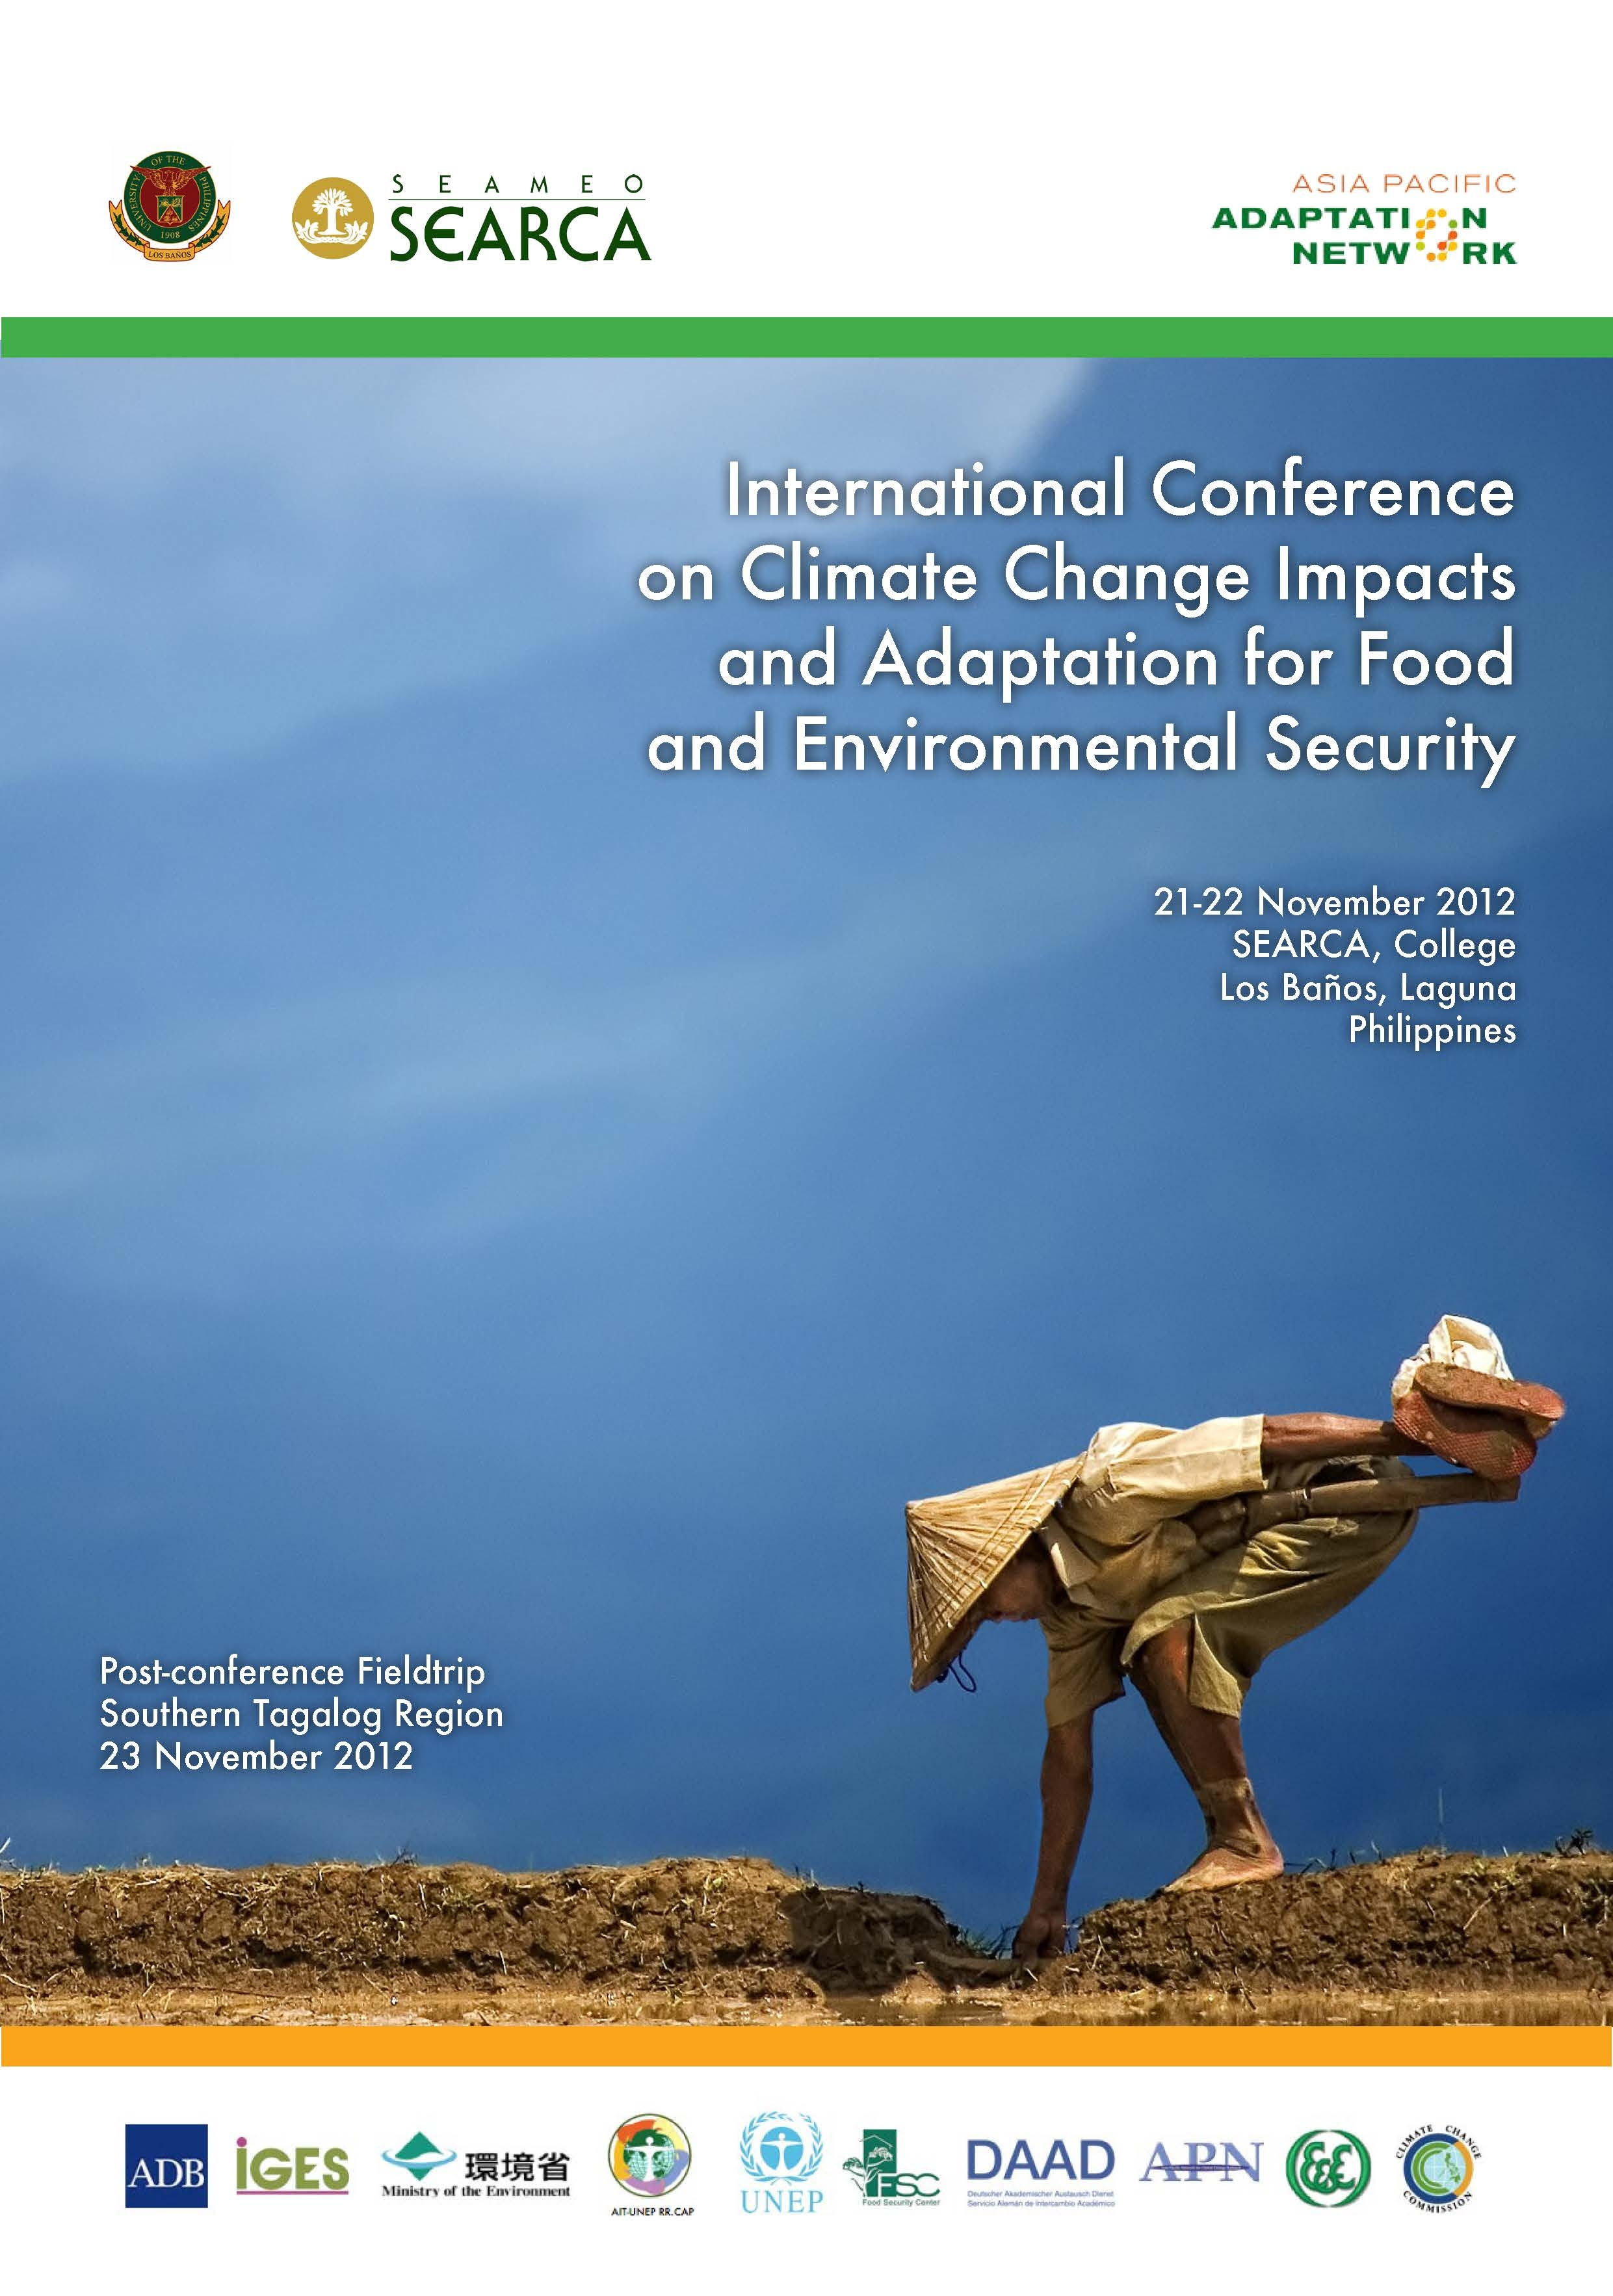 International Conference on CLIMATE CHANGE IMPACTS AND ADAPTATION FOR FOOD AND ENVIRONMENTAL SECURITY (Souvenir Program and Abstracts of Conference Papers)